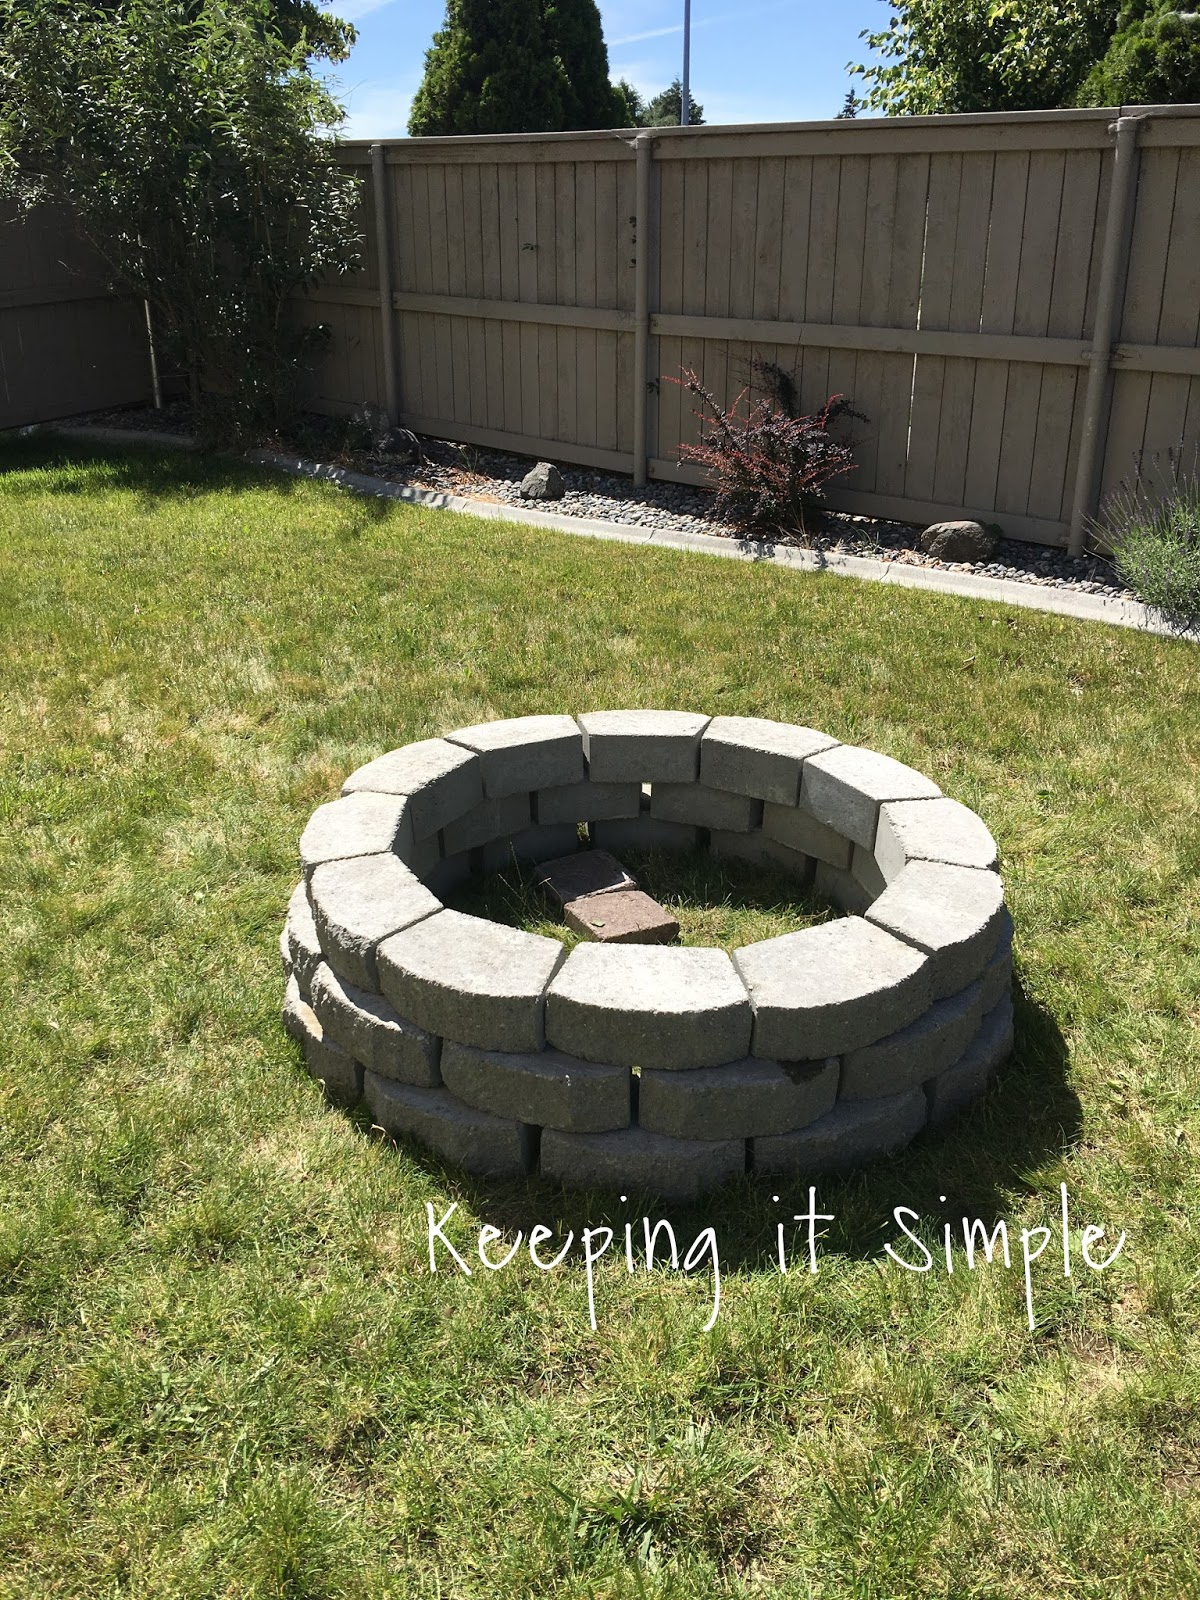 How To Build A Diy Fire Pit For Only 60 Keeping It Simple in 10 Awesome Tricks of How to Build Easy Backyard Fire Pit Ideas